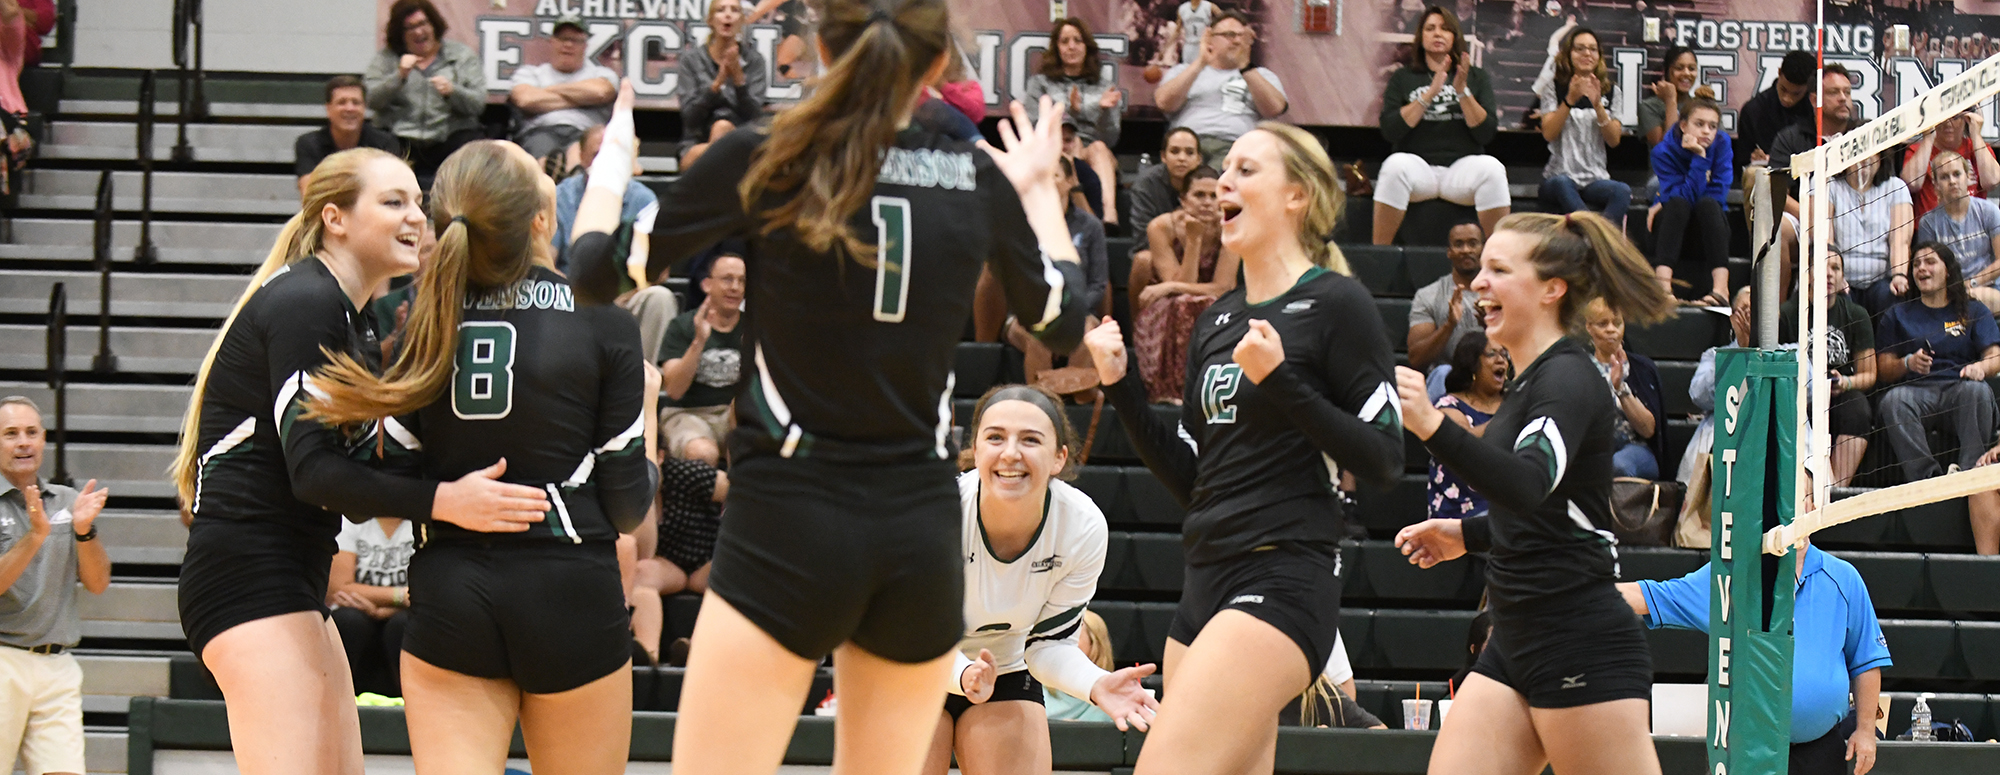 Women's Volleyball Sweeps Gallaudet for 16th Win